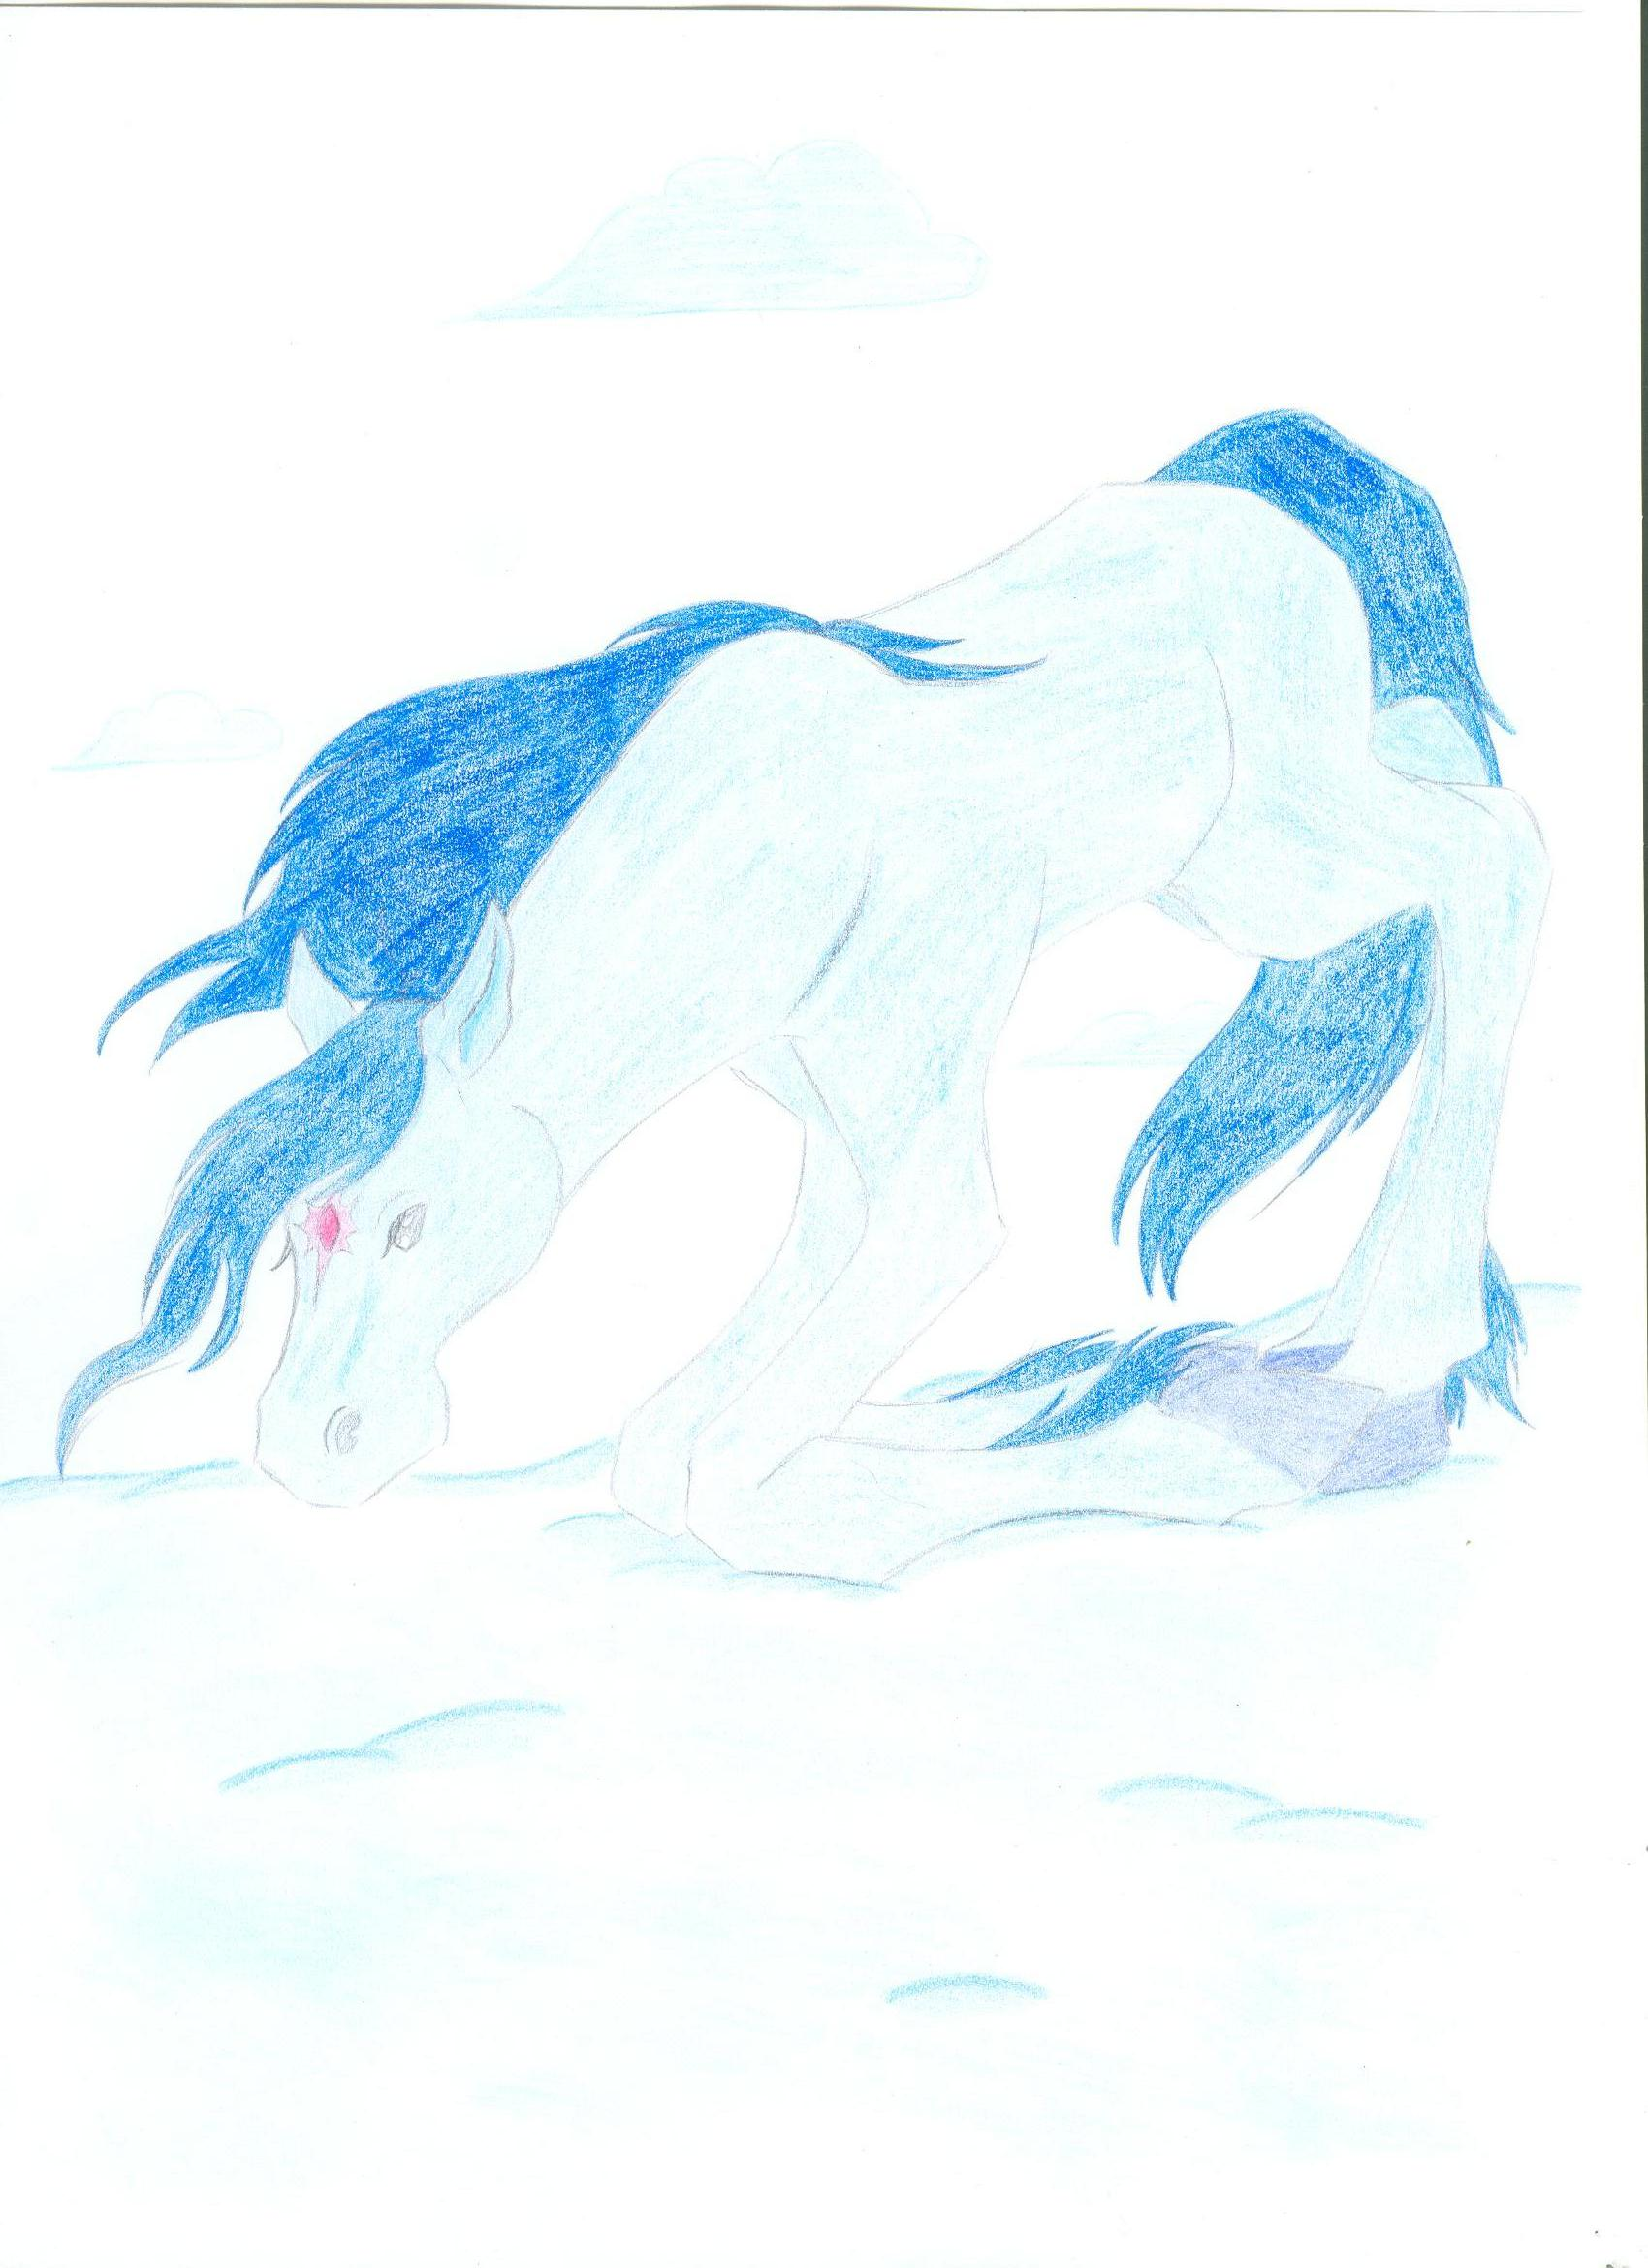 Spirit of Ice by Isukaru